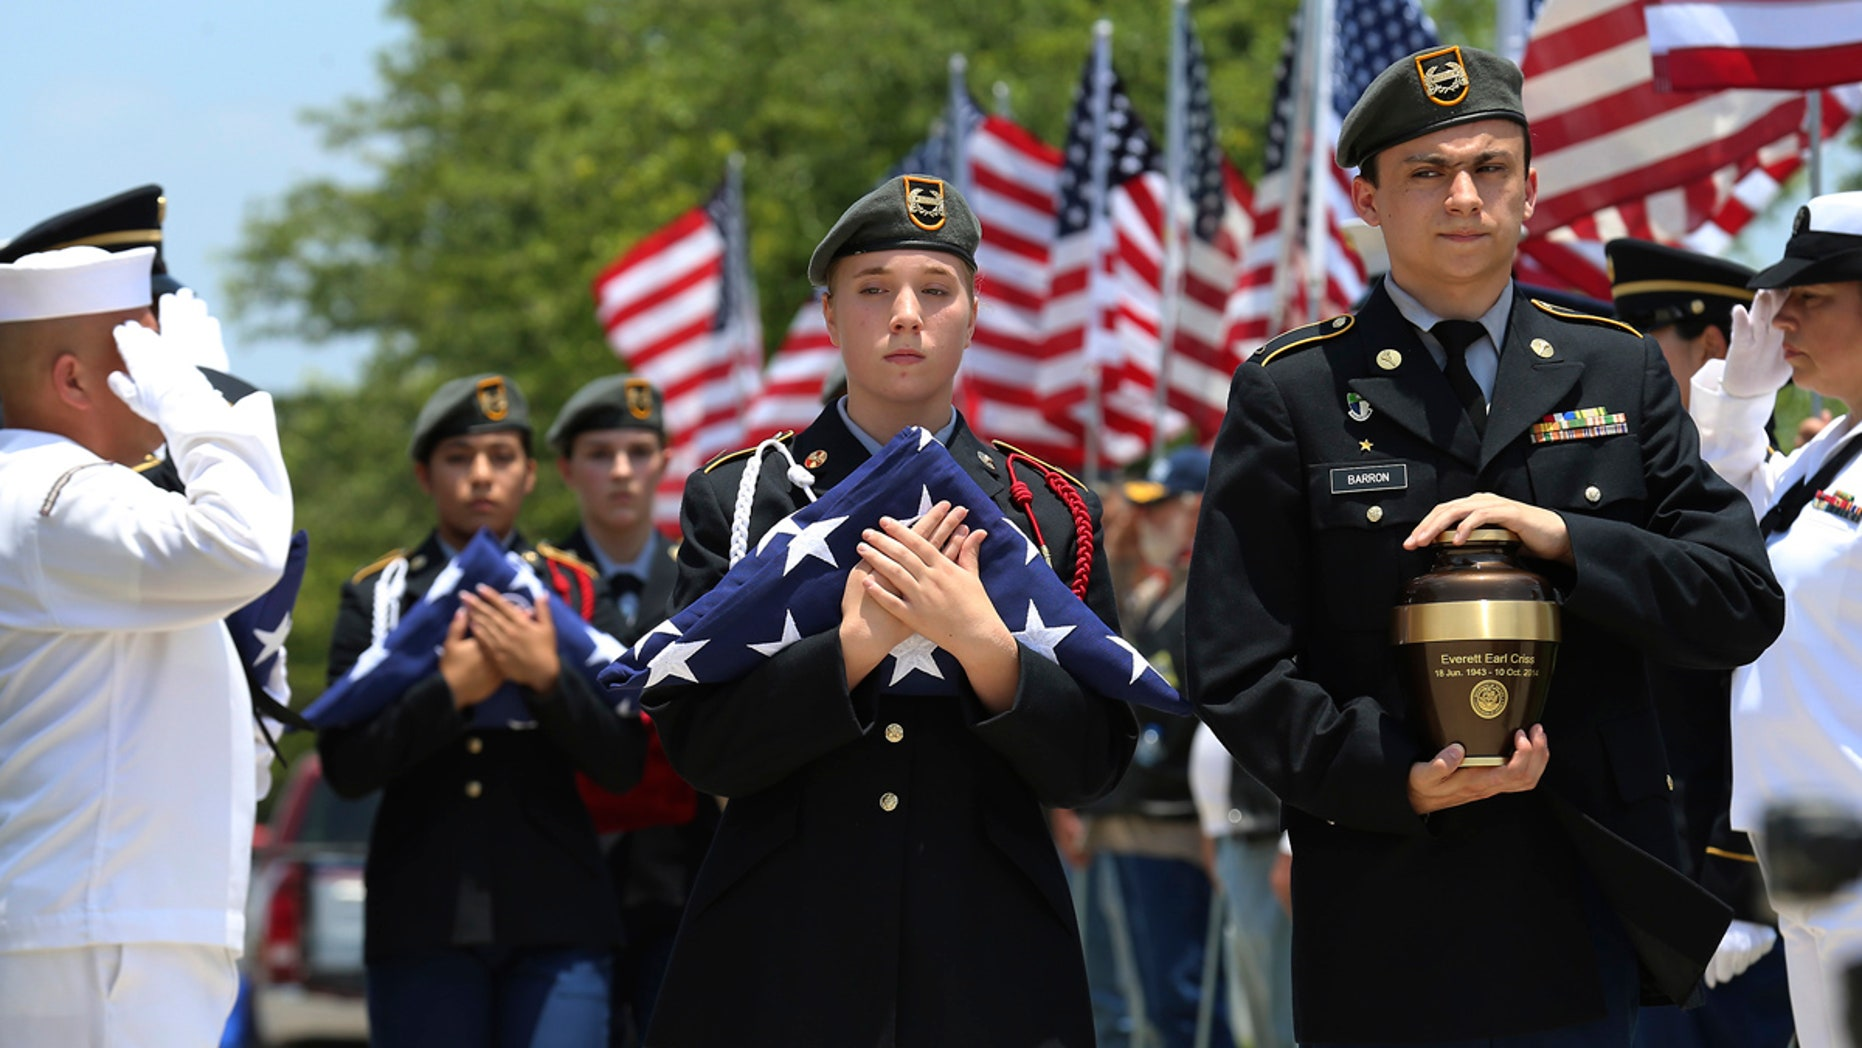 In this Friday, June 1, 2018 photo, MacArthur Junior ROTC students Michael Barron, right, and Grace Conger carry the cremated remains of veteran Everett Earl Criss as Fort Sam Houston National Cemetery and the Missing In America Project conduct a military burial service for the cremated remains of eight unclaimed veterans in San Antonio, Texas.